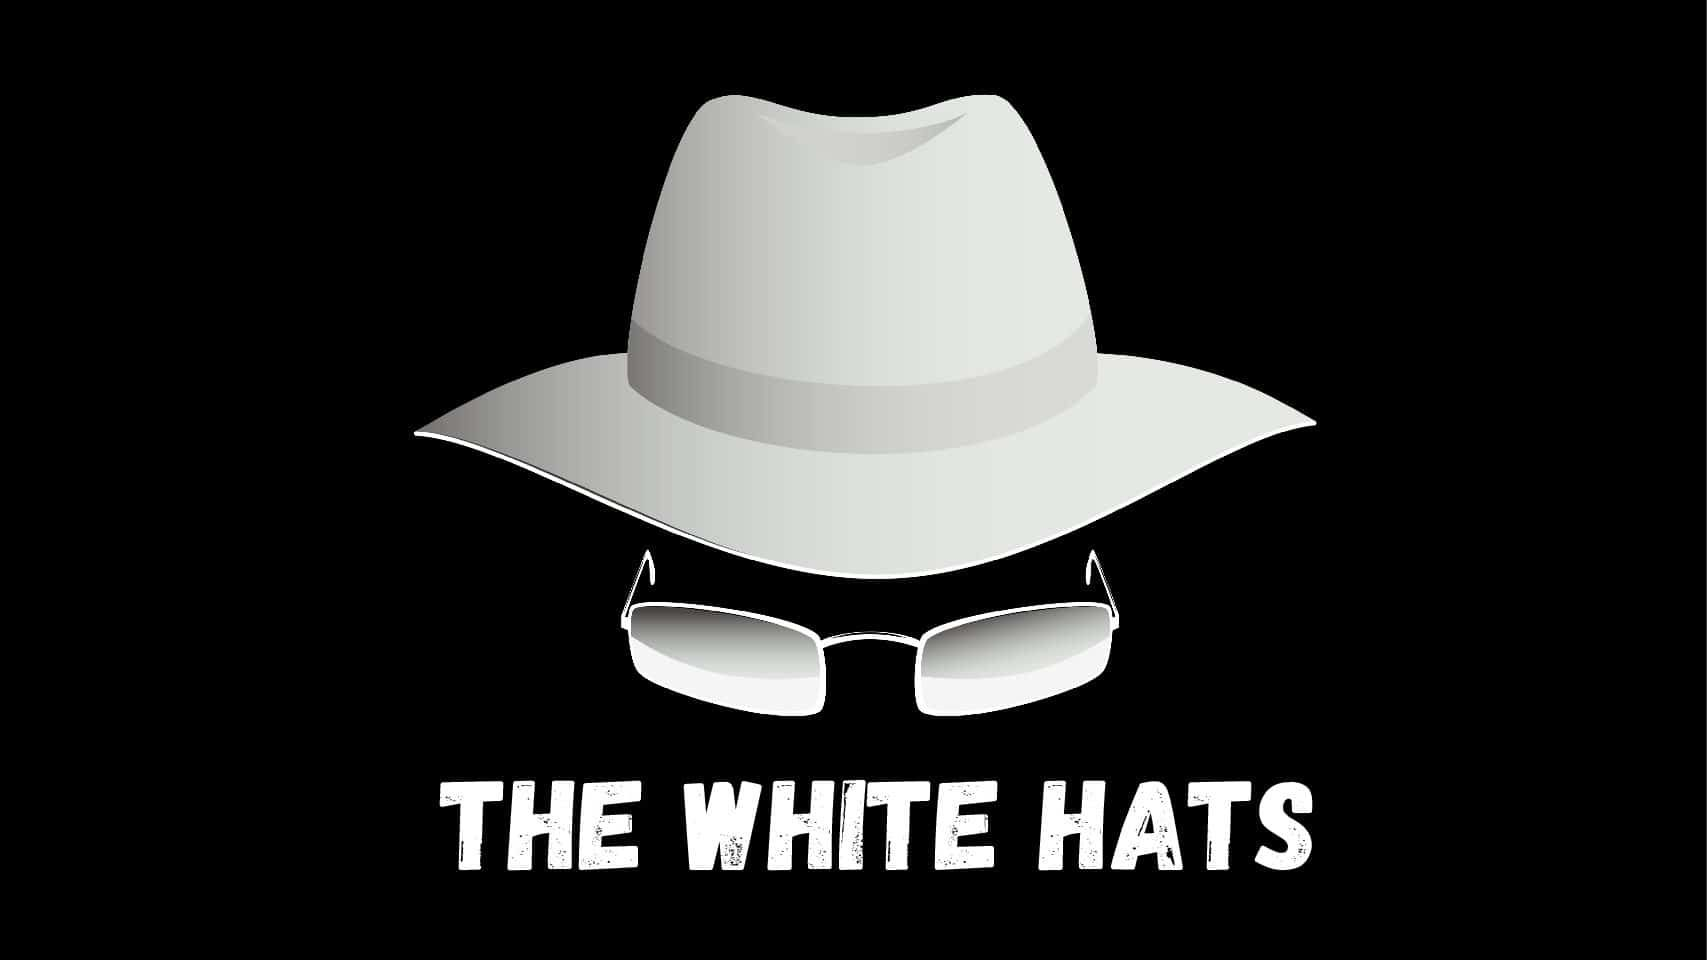 Who Are The White Hats White Dragon Society White Hat Astral Projection